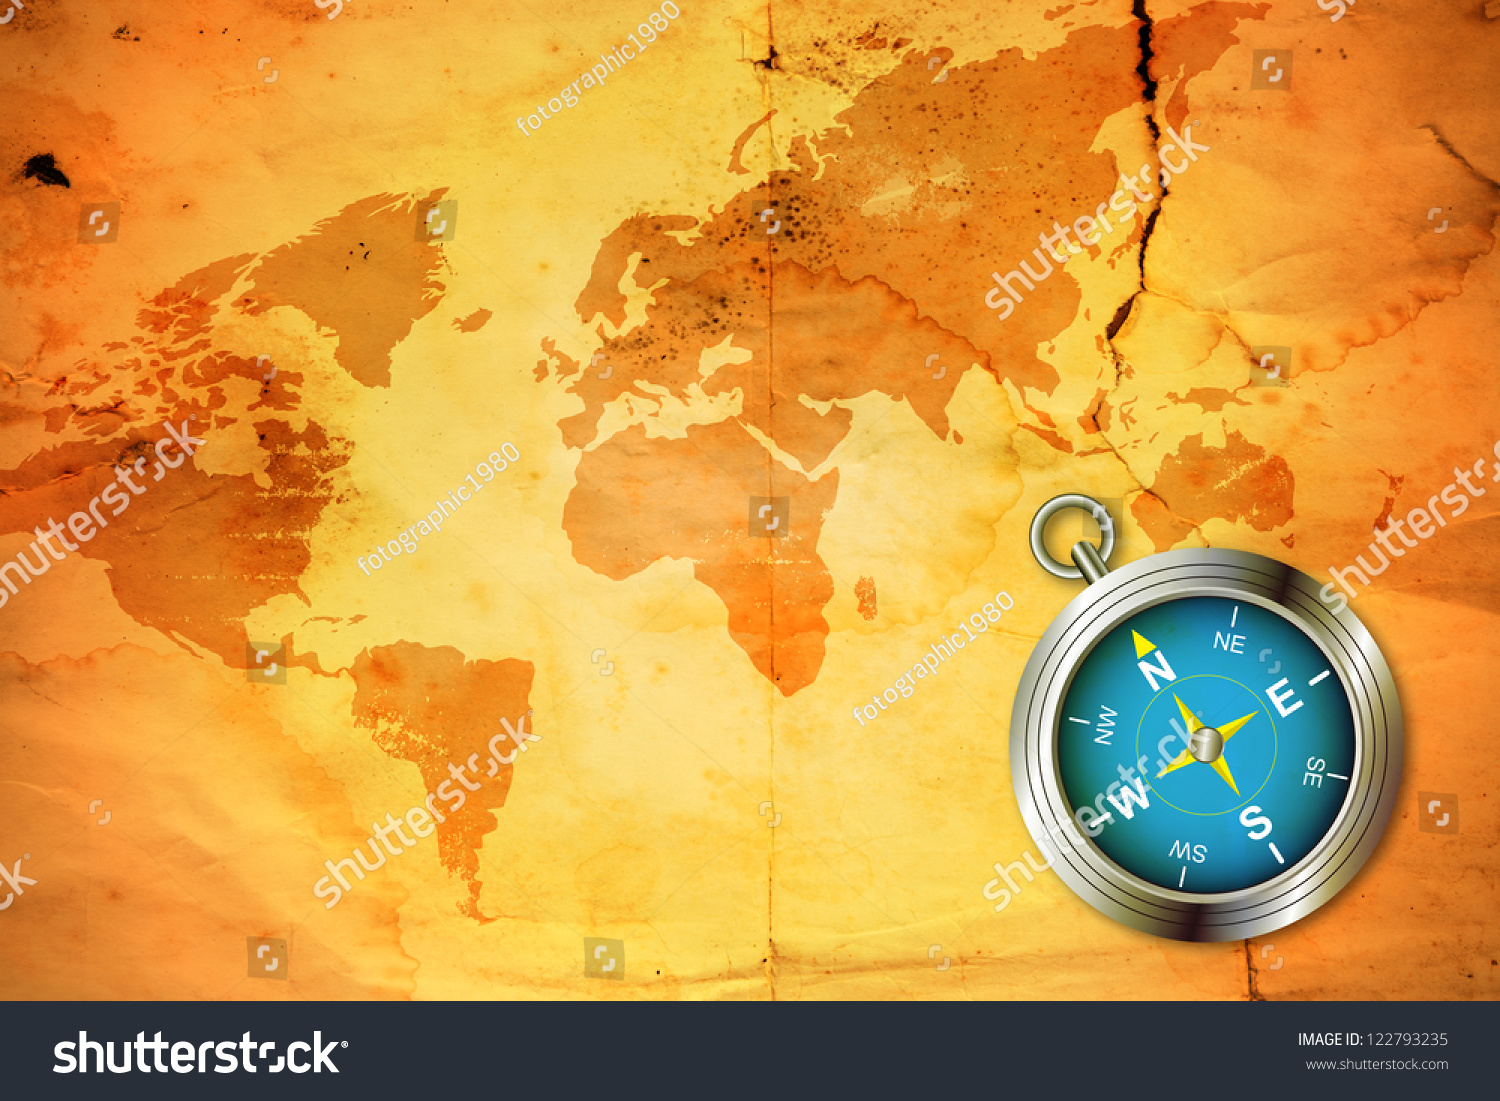 world map with compass, old compass on world map wallpaper wall